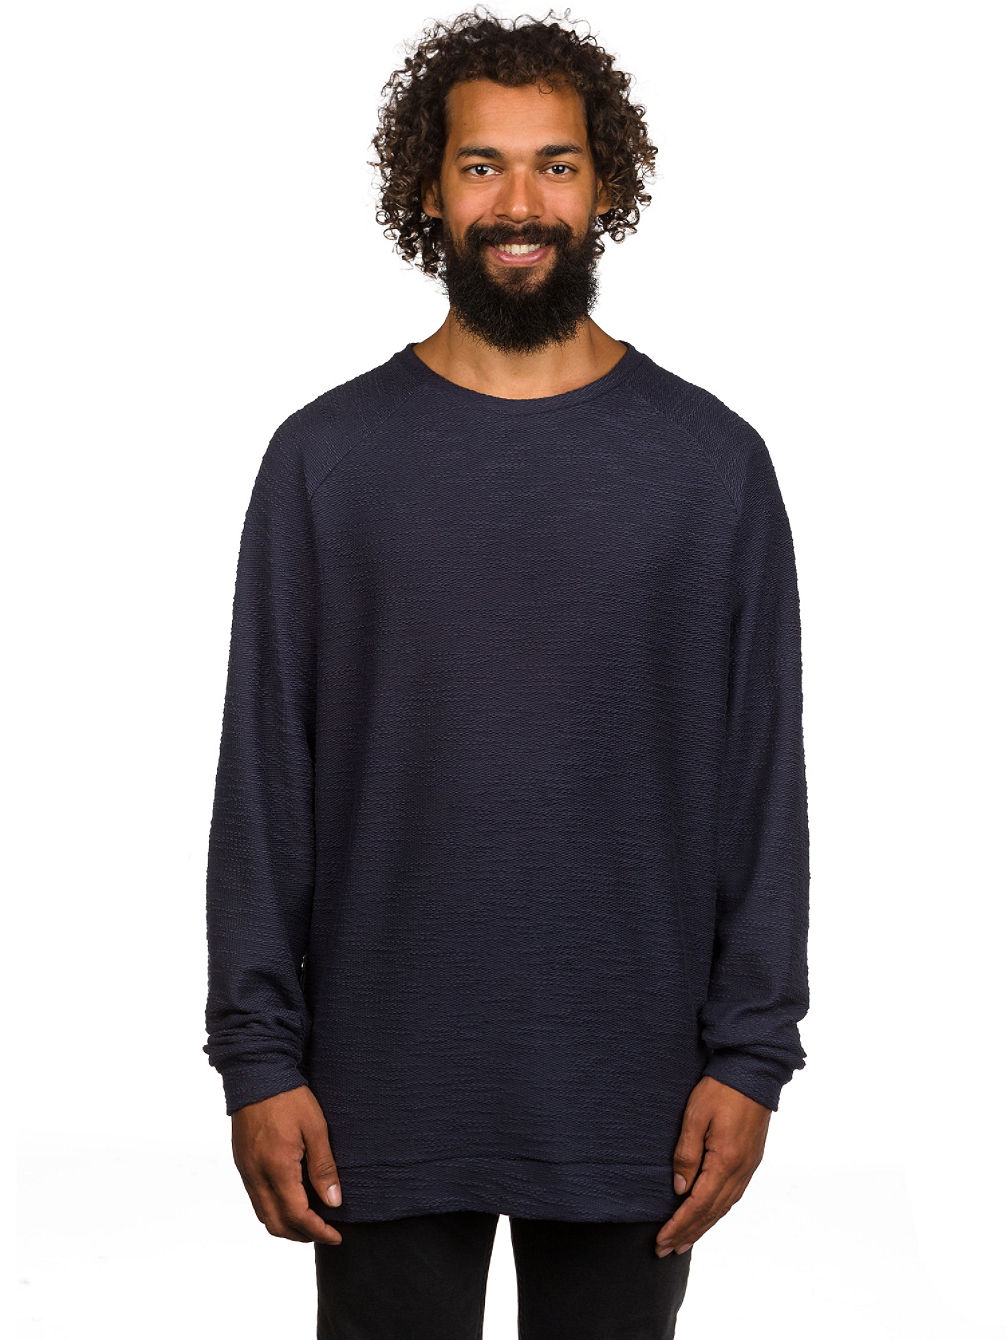 Hörby Sweater